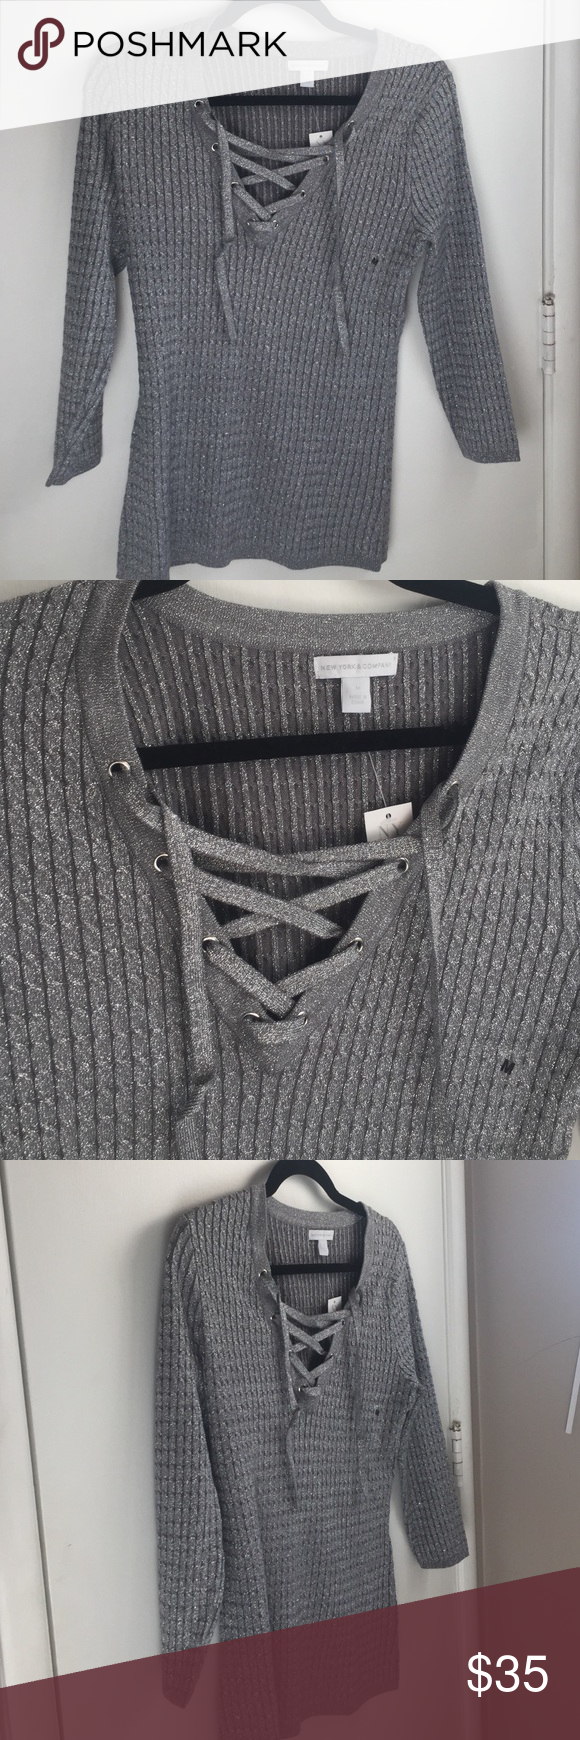 Grey/silver lace up sweater NWT | Gray, Customer support and Delivery